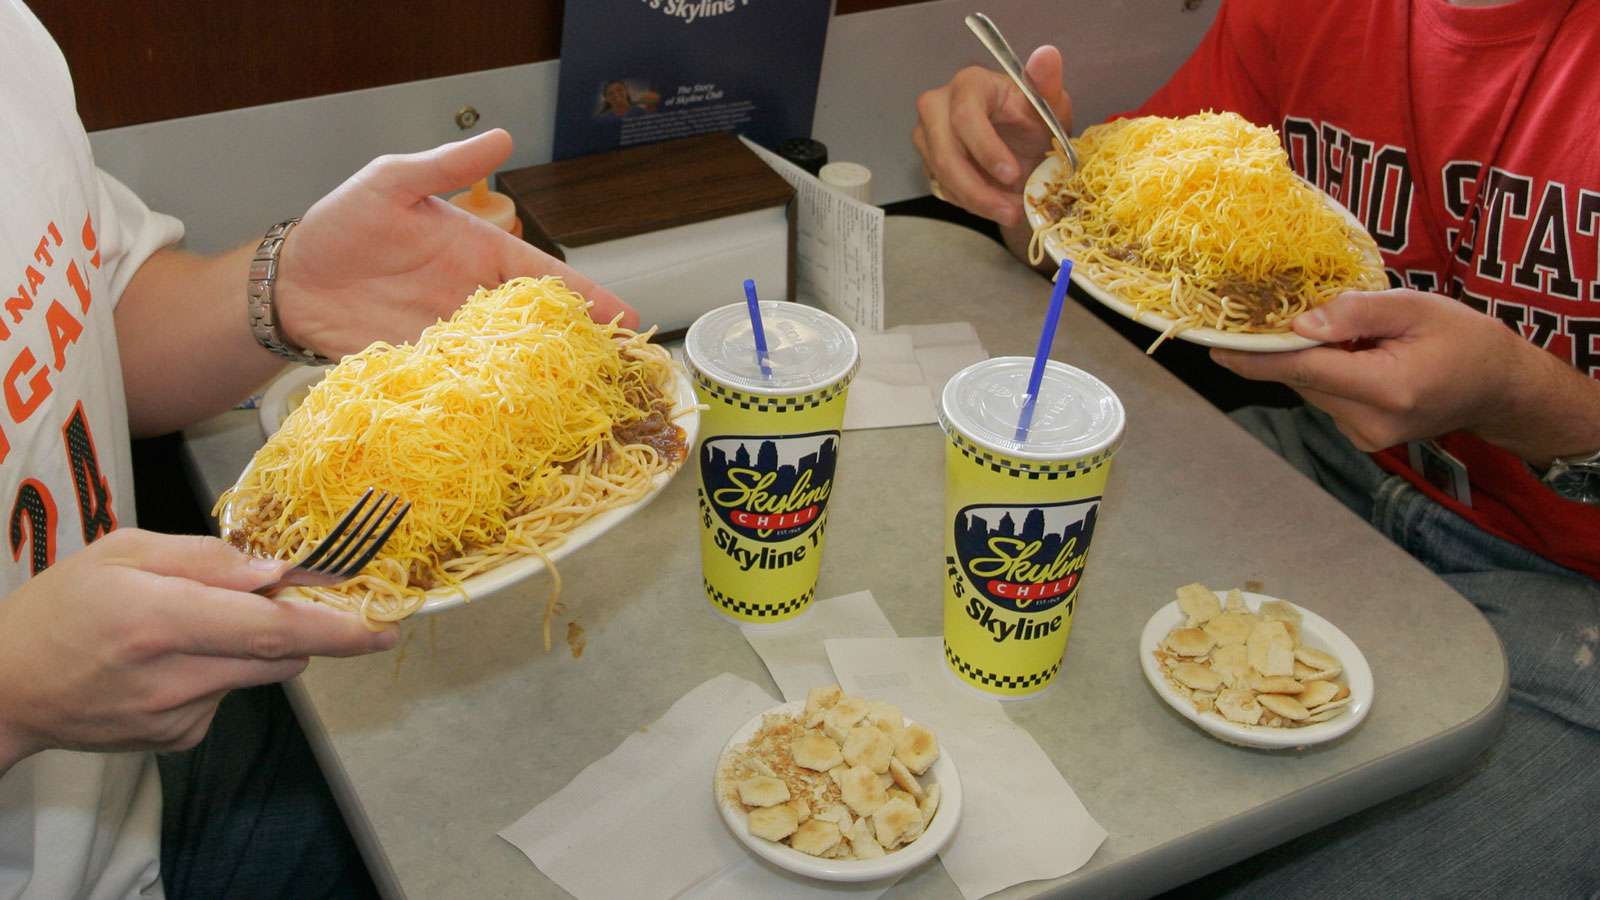 skyline-chili-explained-cincinnatian-FT-BLOG0617.jpg